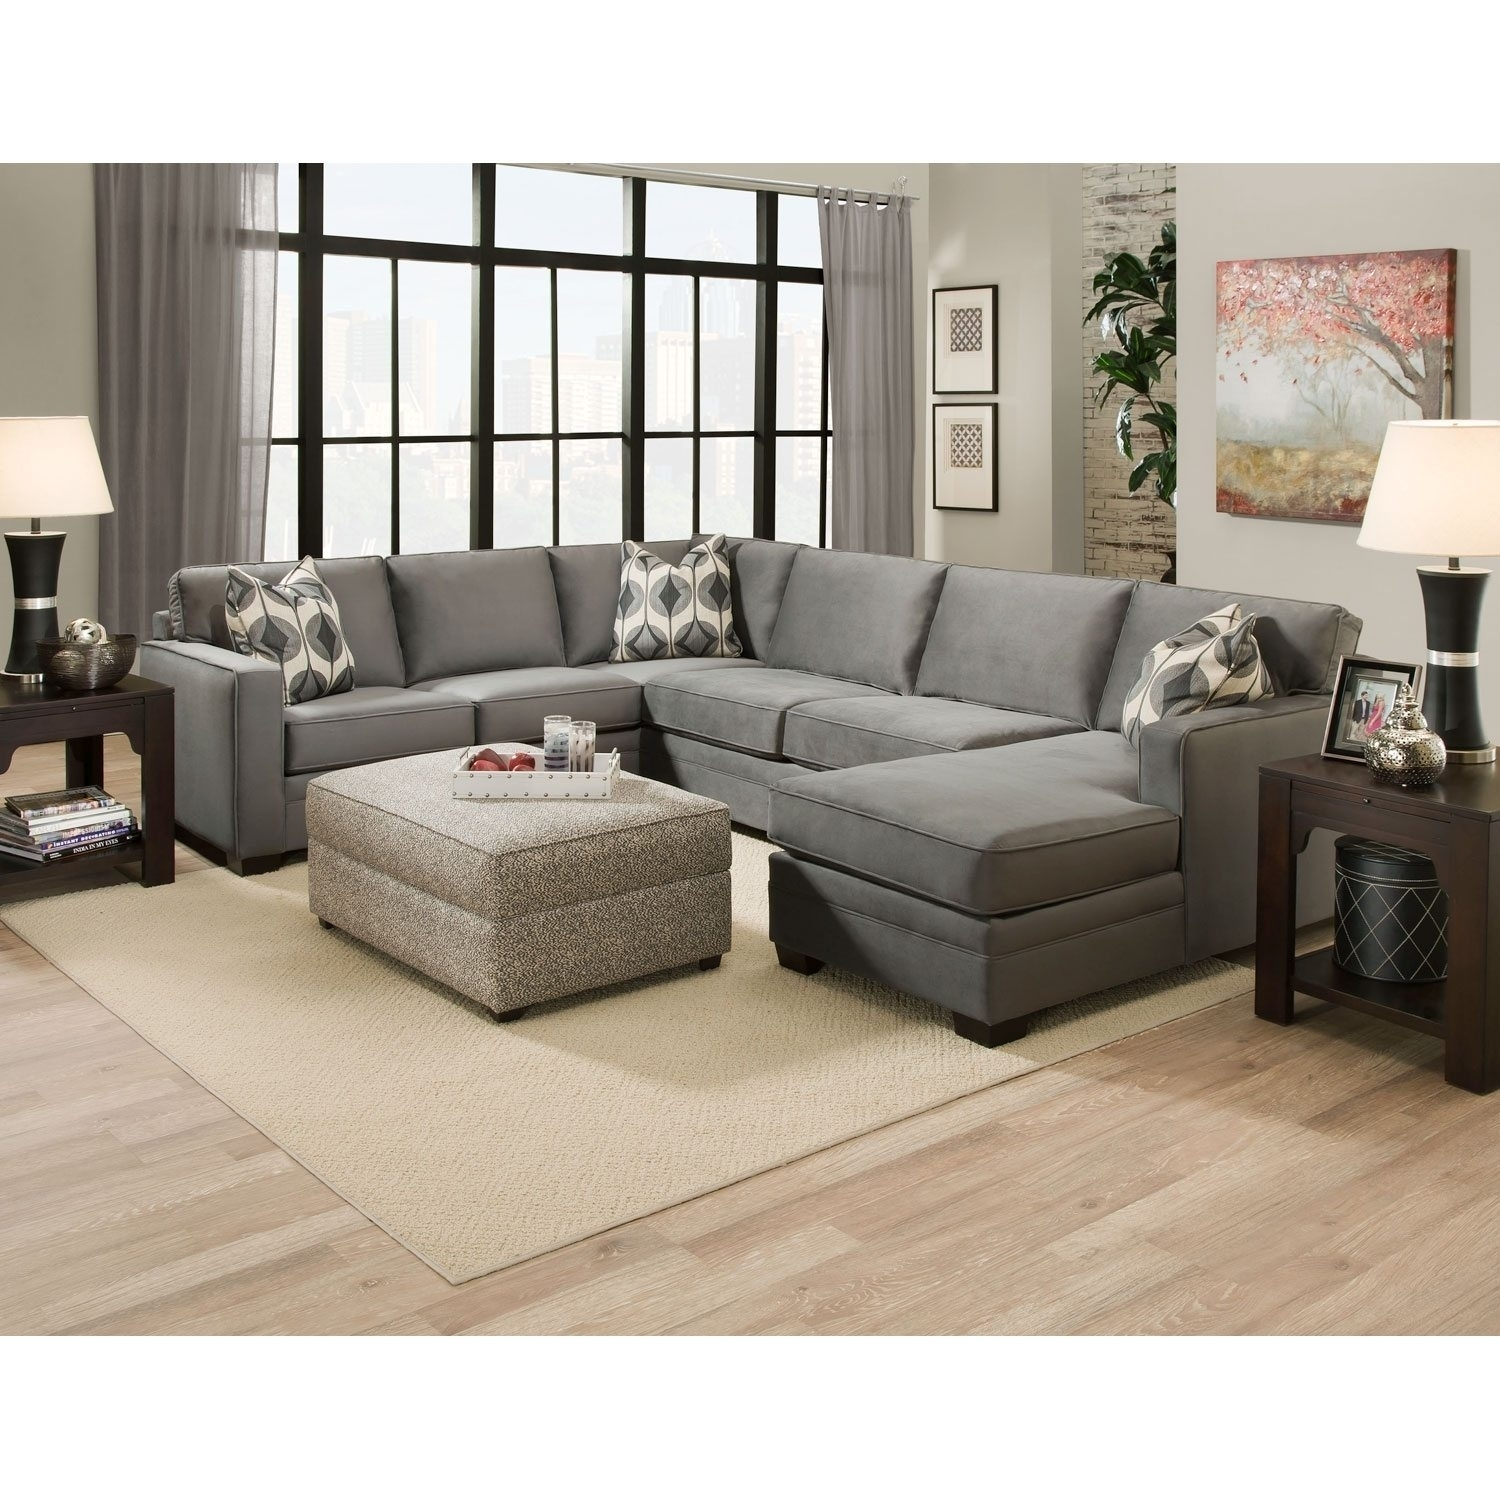 Lane Sectionals Sofas Sam's Club • Sectional Sofa Throughout Sectional Sofas At Sam's Club (View 7 of 10)